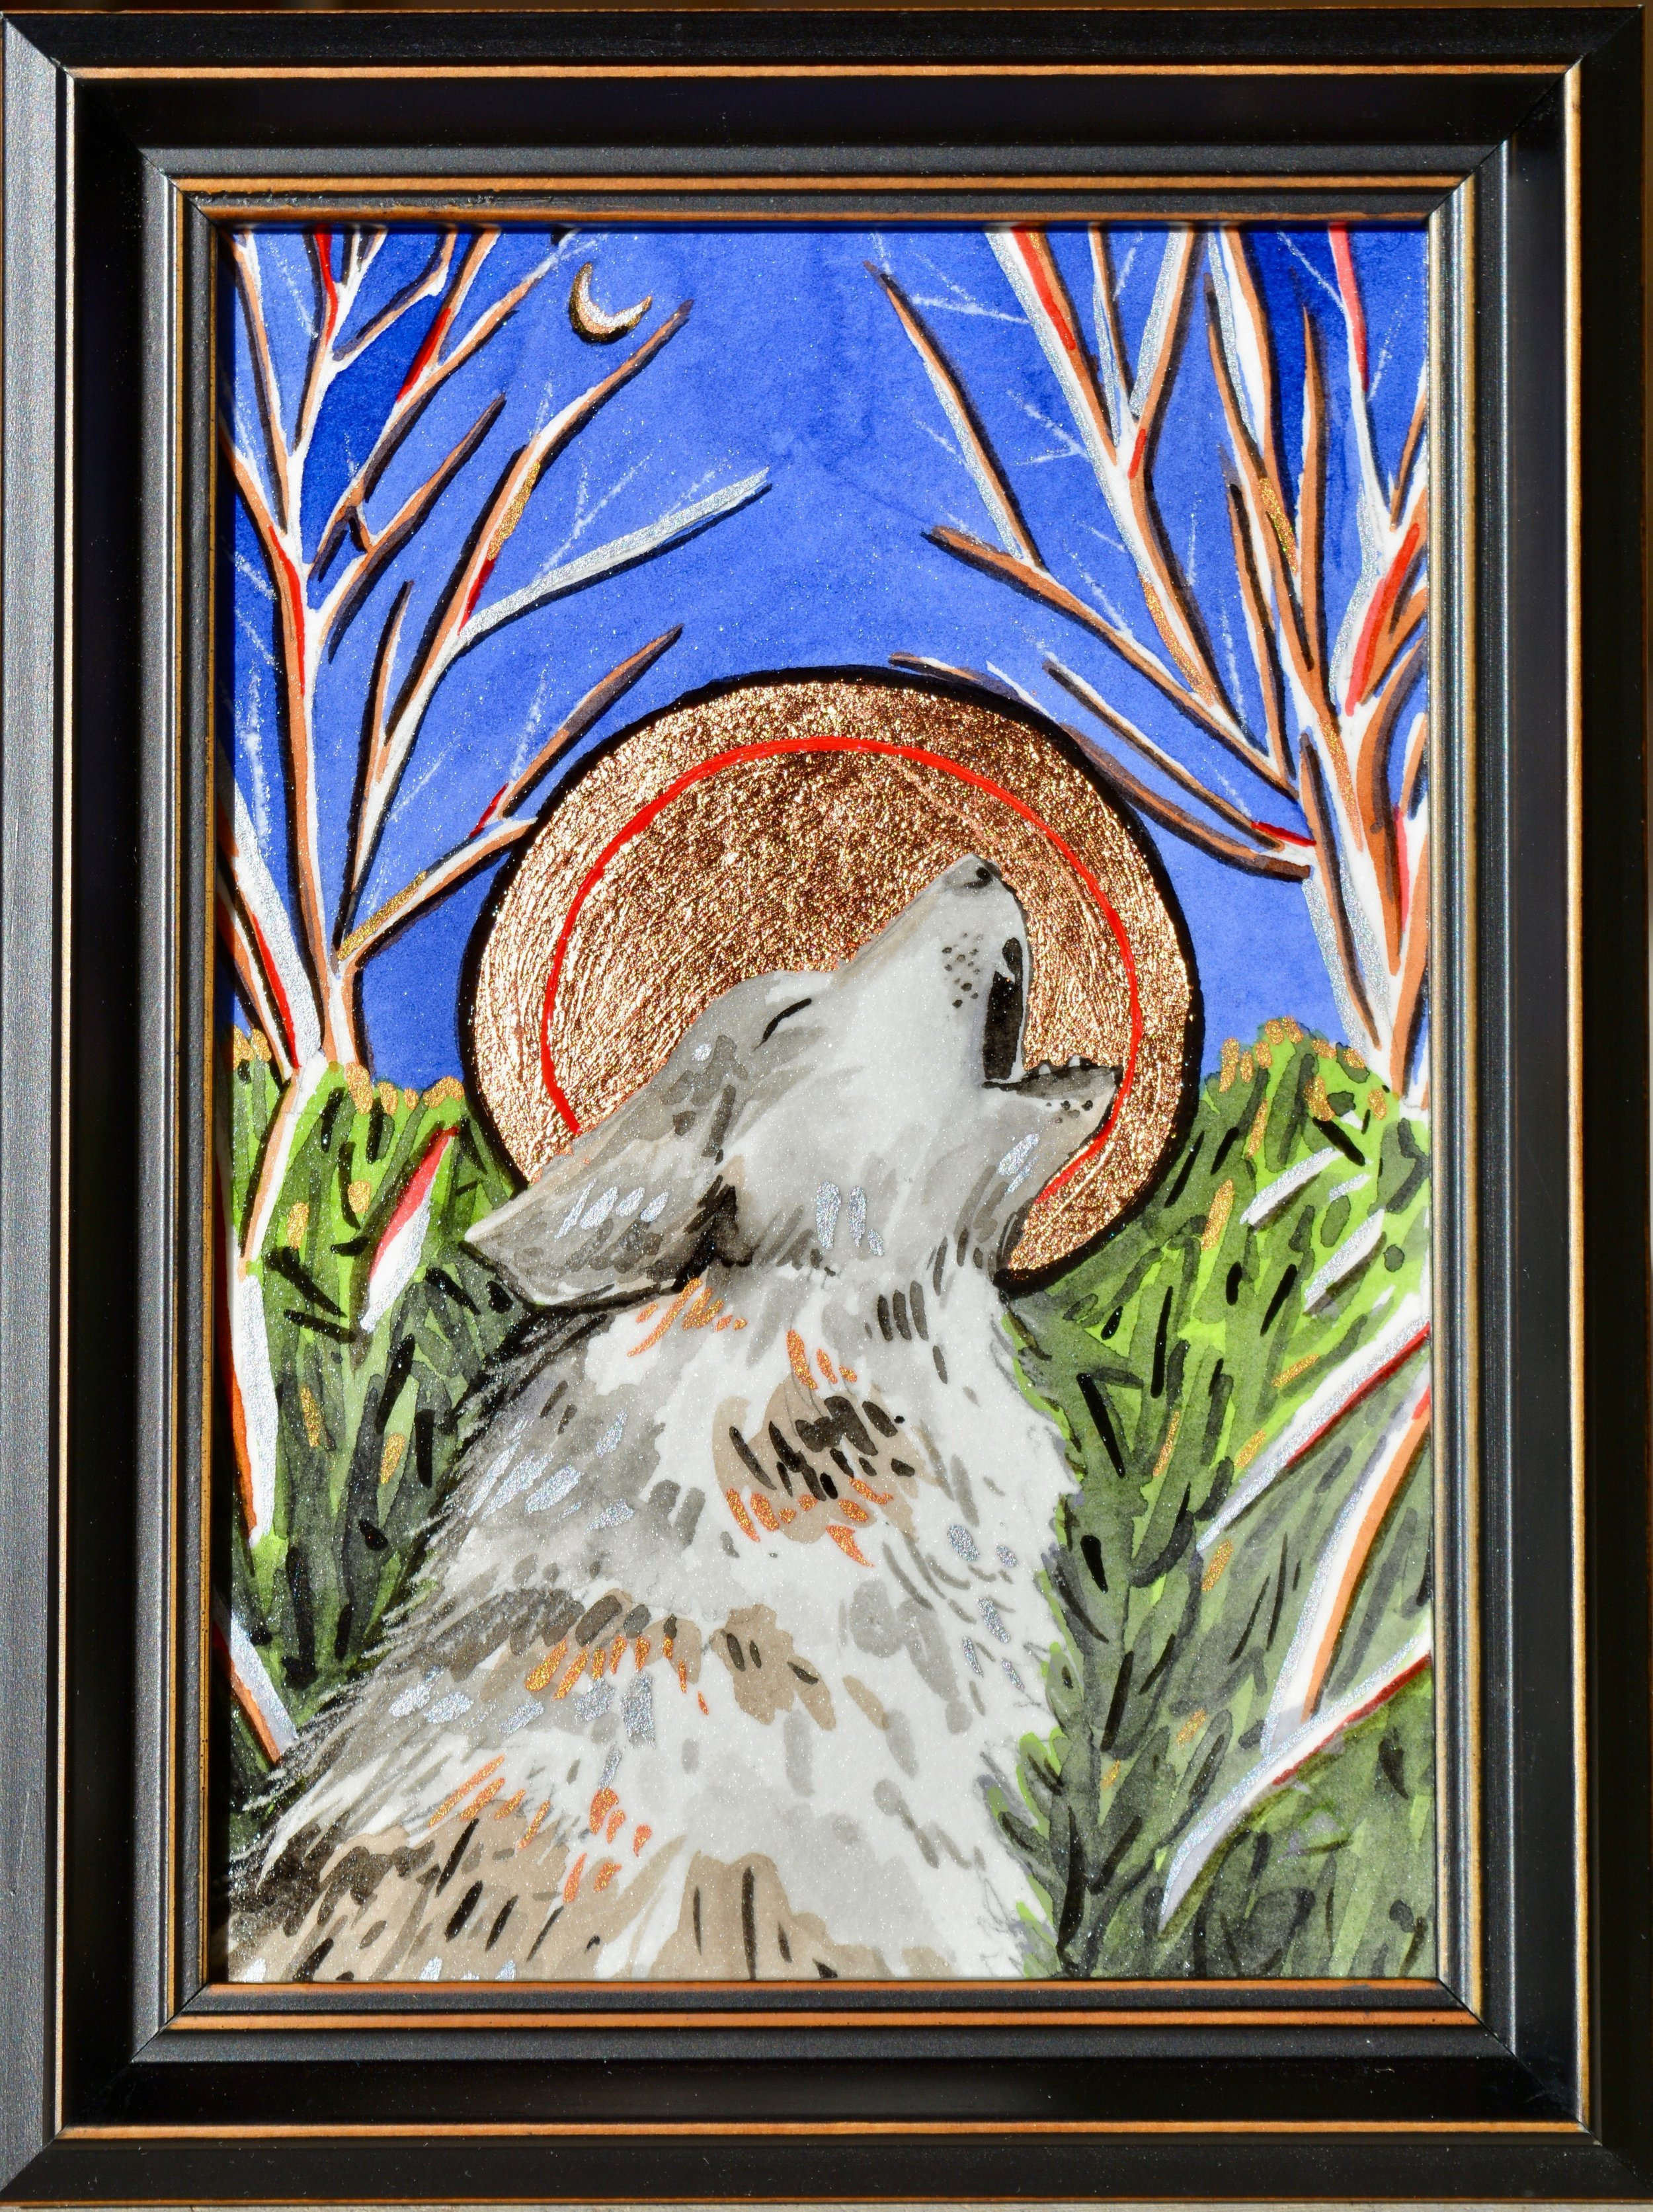 Sonoricons: Mexican Gray Wolf Available for purchase at  Raices Taller 222 Art Gallery & Workshop  during the month of December 2018